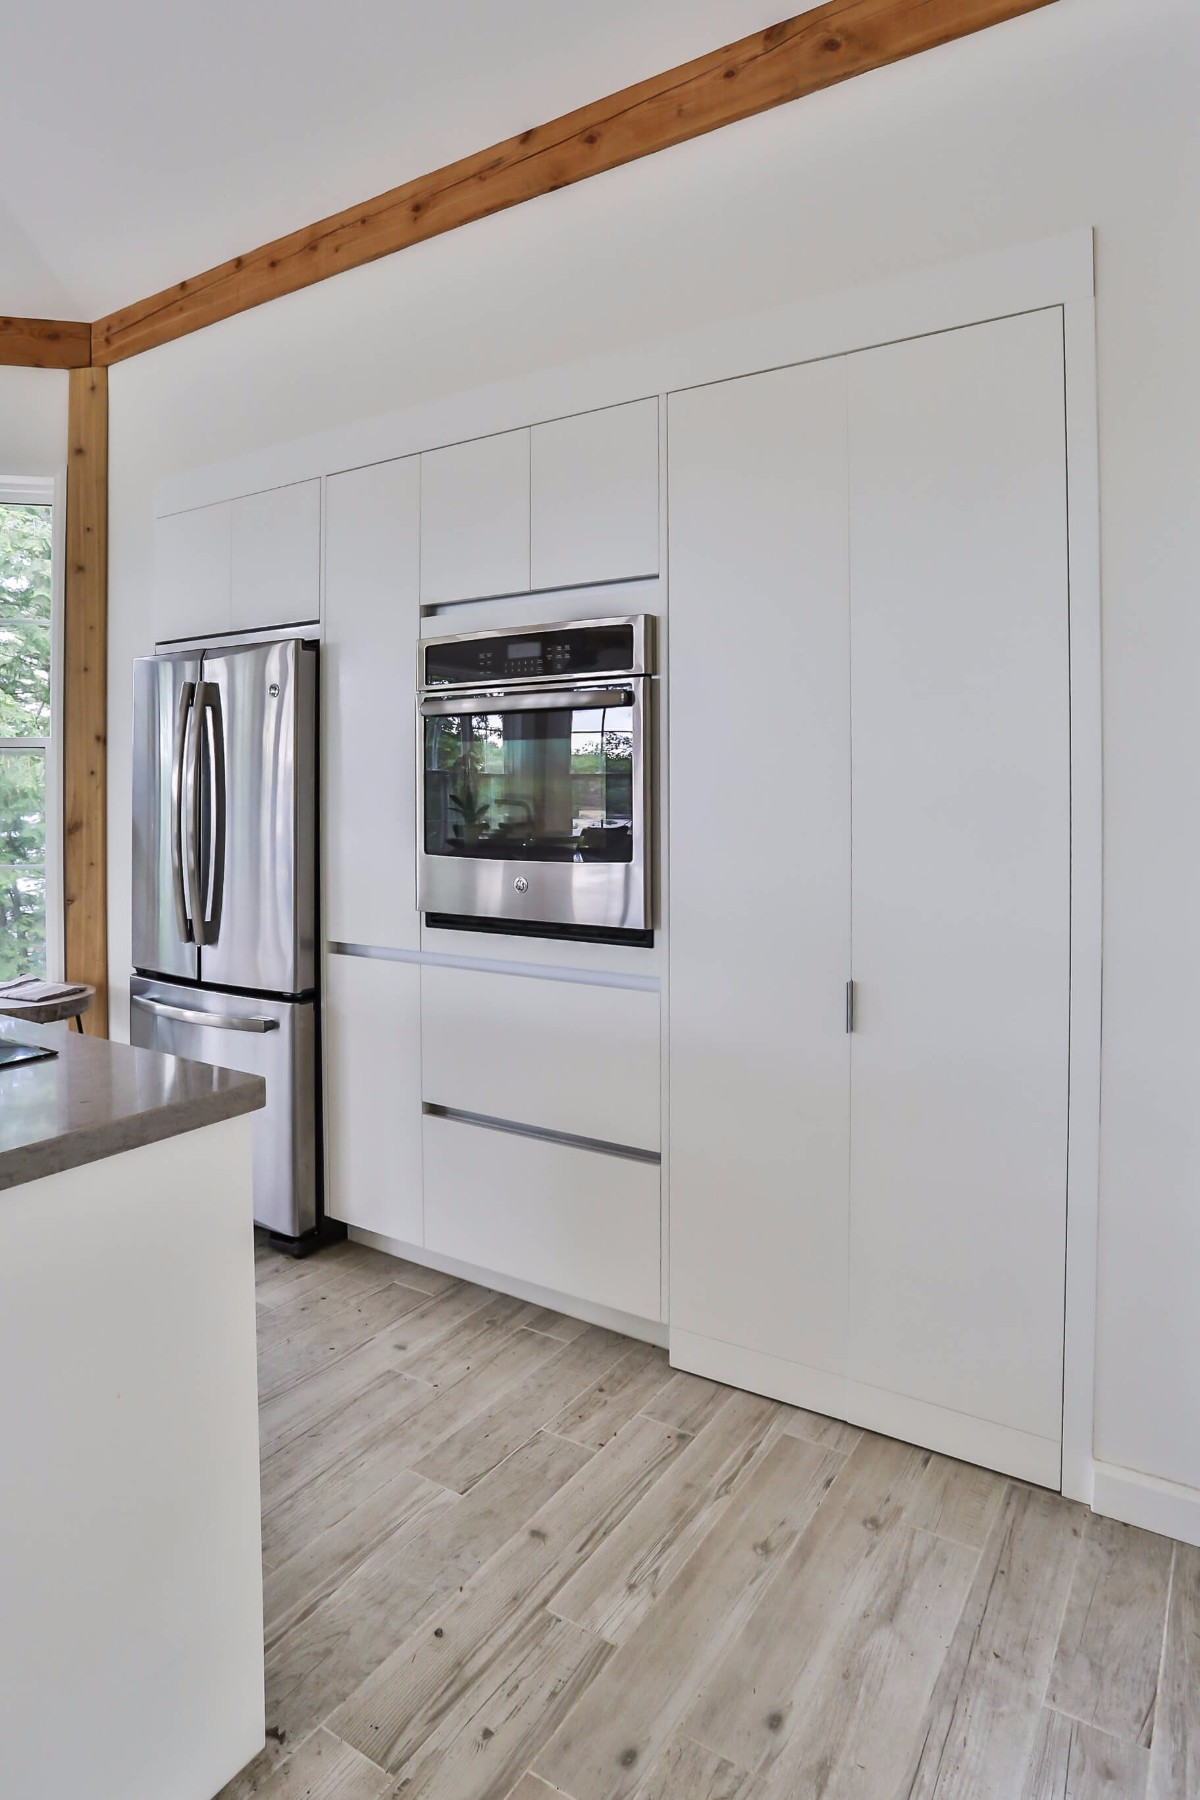 White kitchen cupboards, hardwood floors and stainless steel appliances.